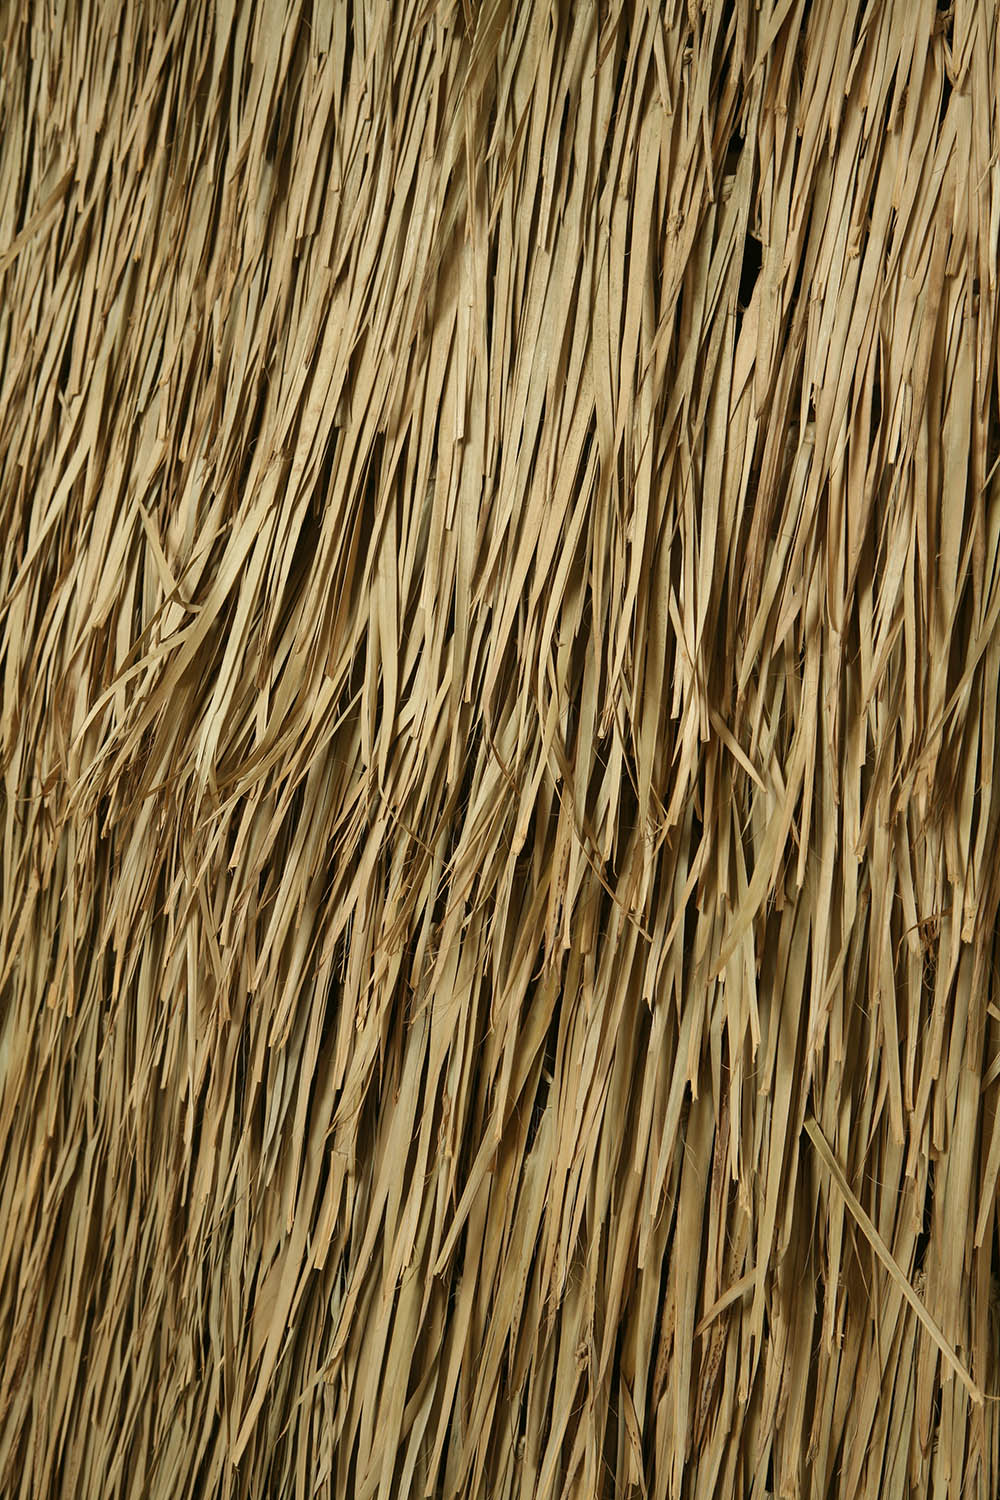 west_seattle__palmthatchcloseup_1500.jpg